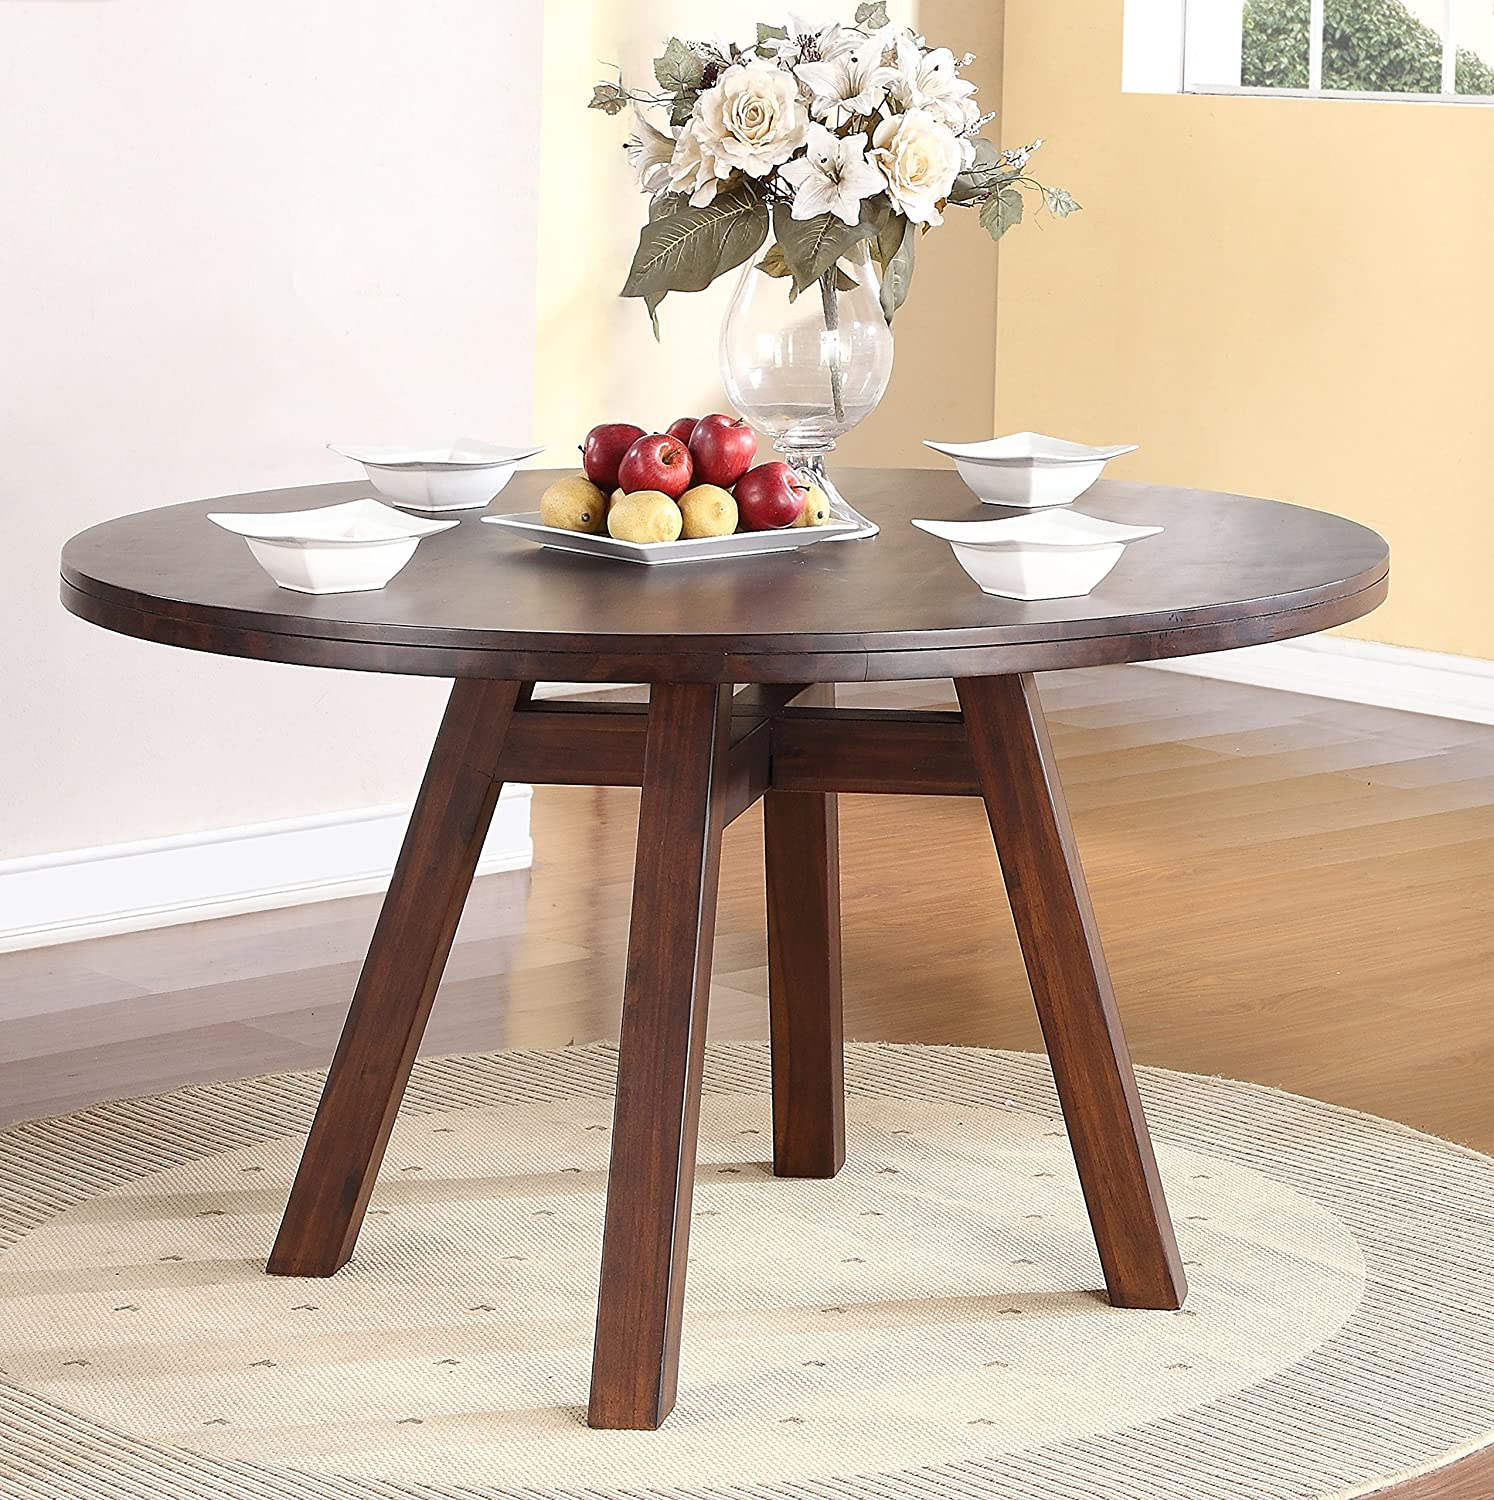 amazon com modus furniture 7z4861 portland solid wood round amazon com modus furniture 7z4861 portland solid wood round dining table walnut kitchen dining